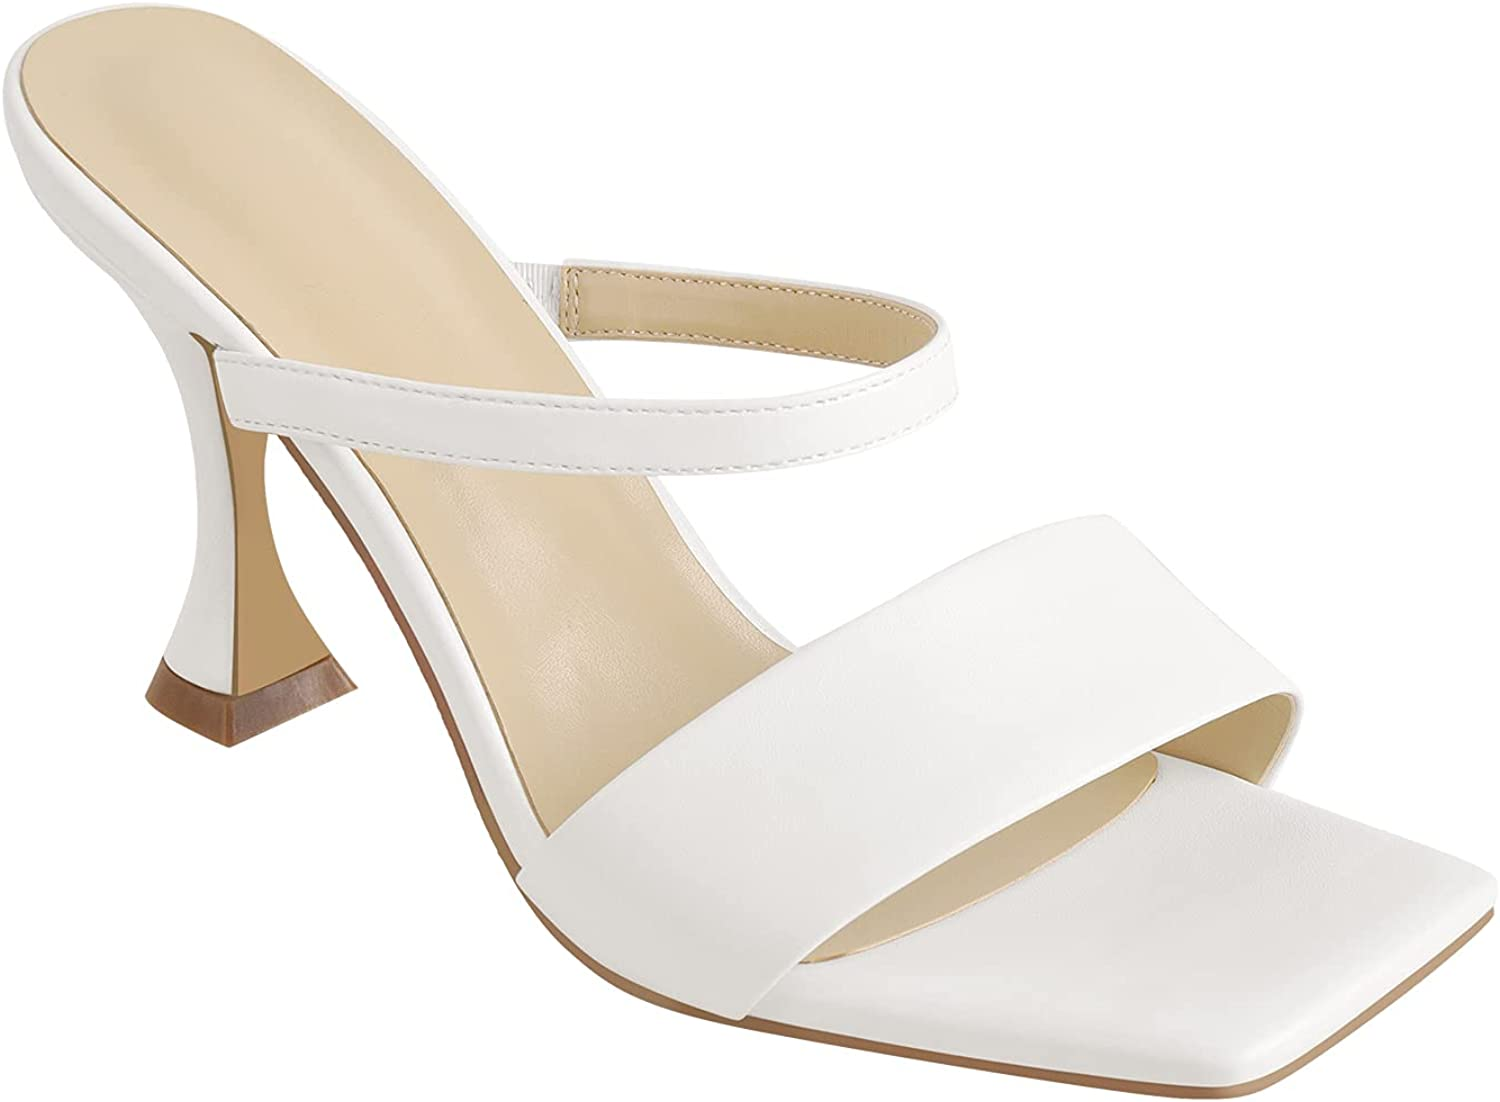 LISHAN Women's Square Open Toe Two Straps High Heel Sandals